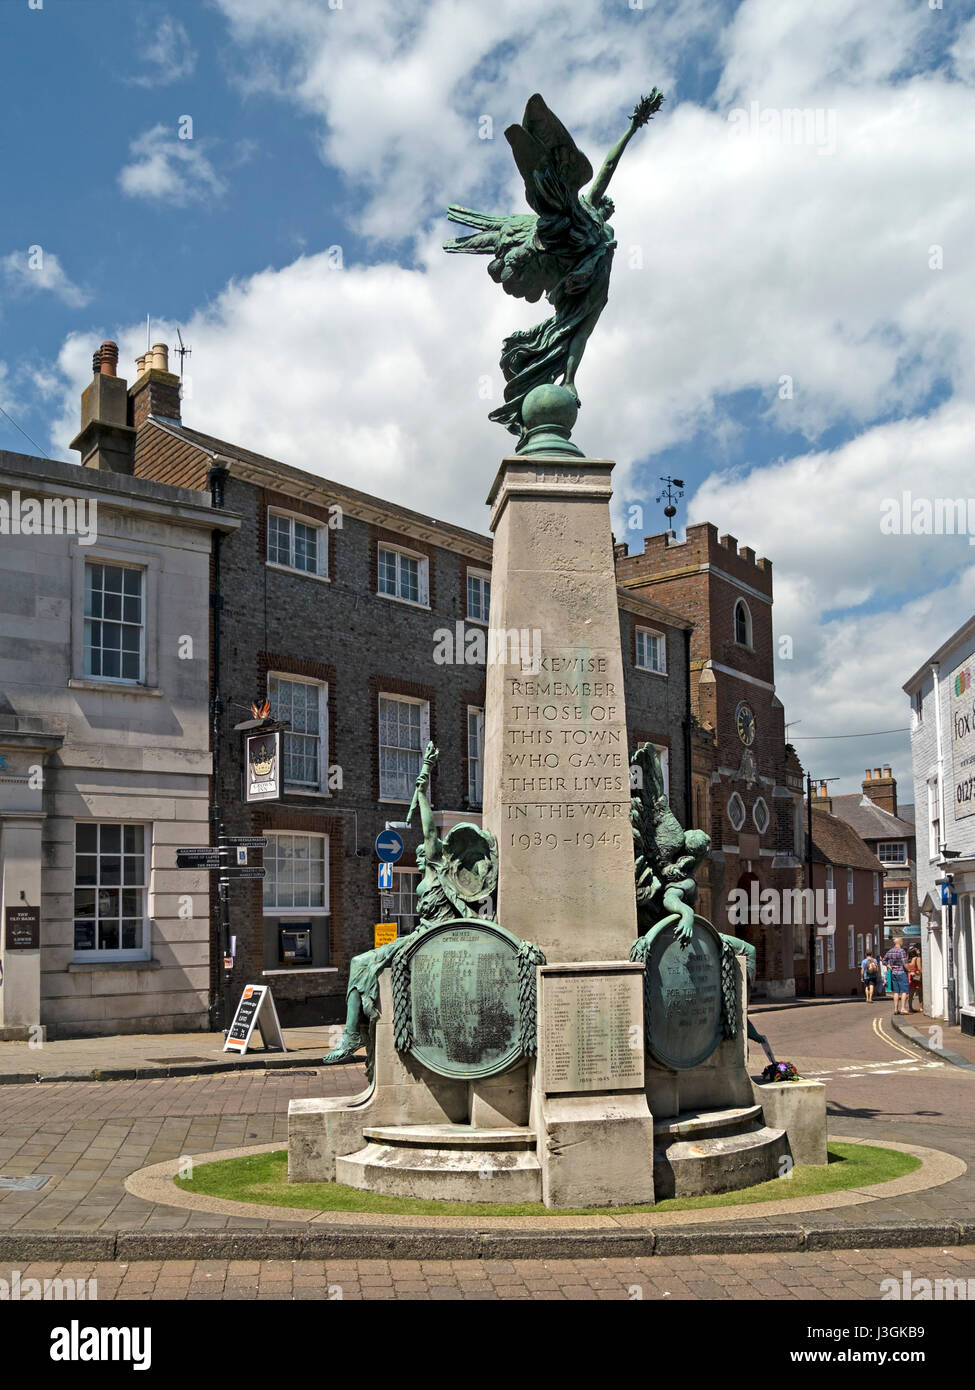 Lewes world war memorial monument by Vernon March, featuring statues of liberty, peace and victory, Lewes, High - Stock Image